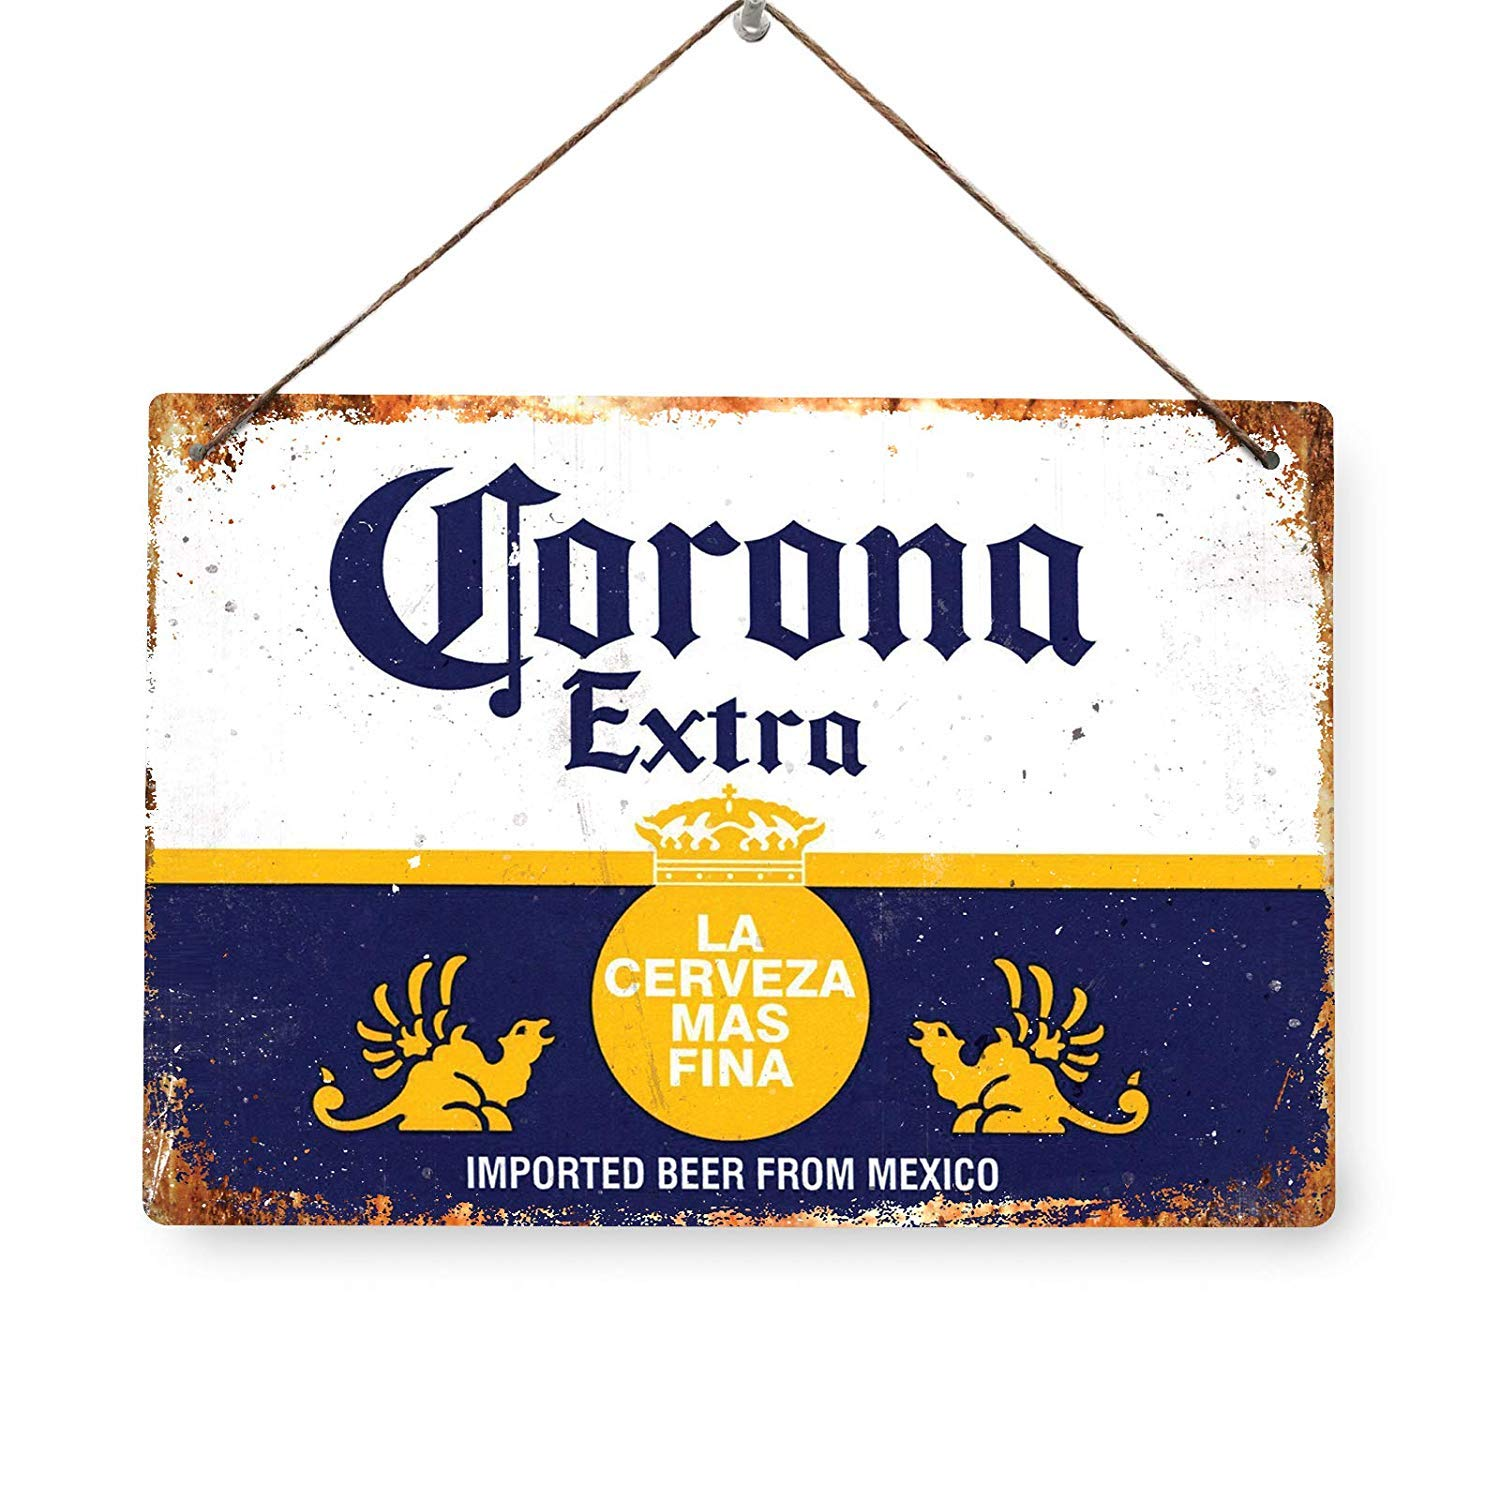 ICE COLD FOSTERS Beer Replica Vintage Metal Wall Sign Retro Pub Bar Mancave